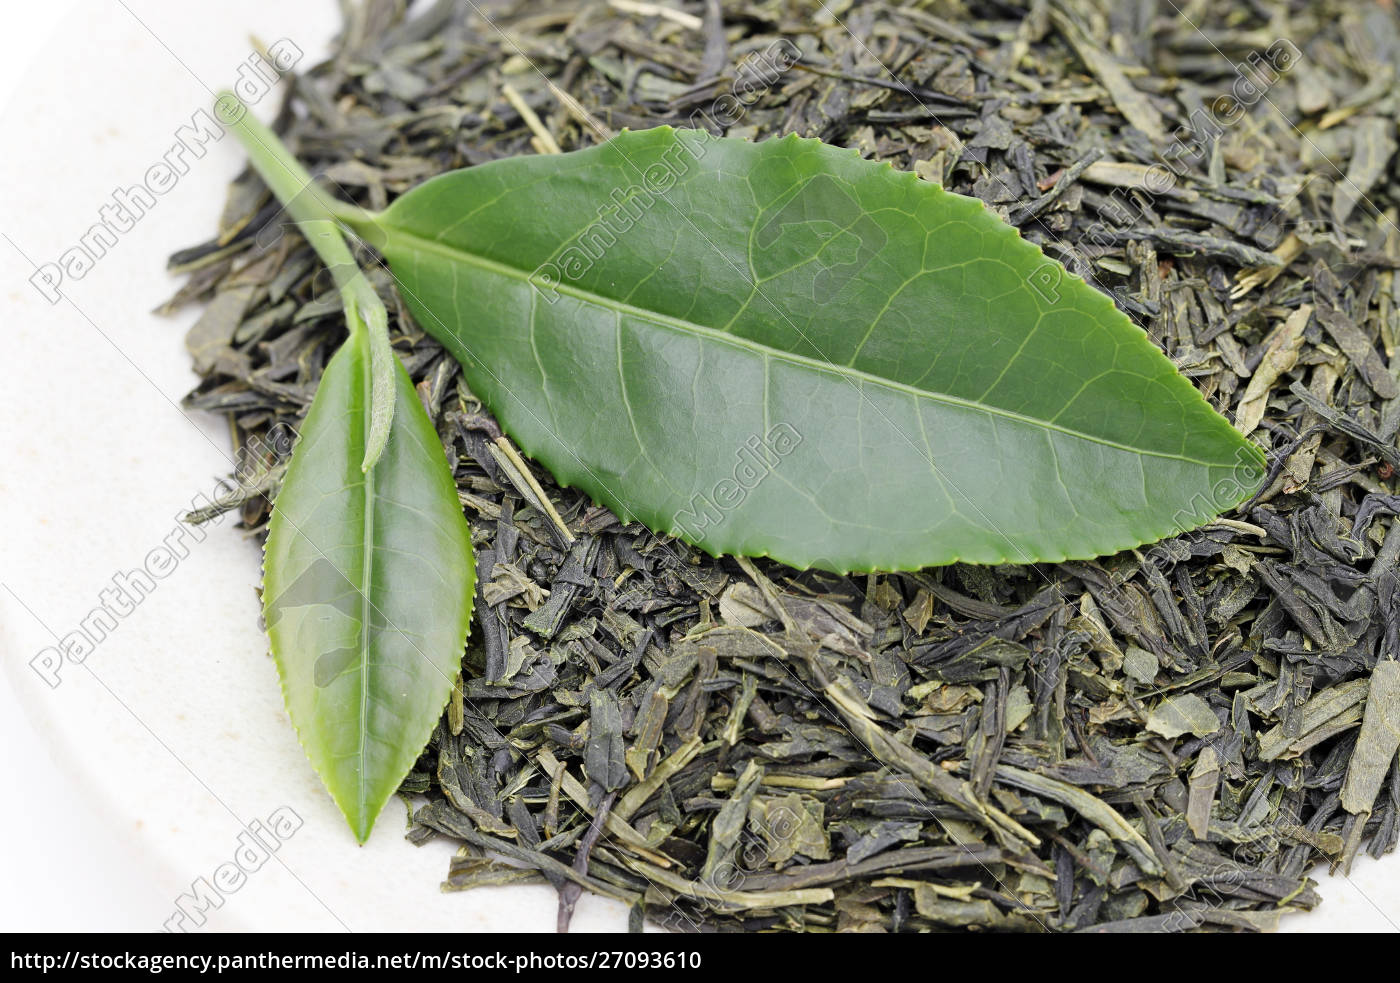 Green Tea Leaves With Dried Tea Leaves On White Stock Image 27093610 Panthermedia Stock Agency